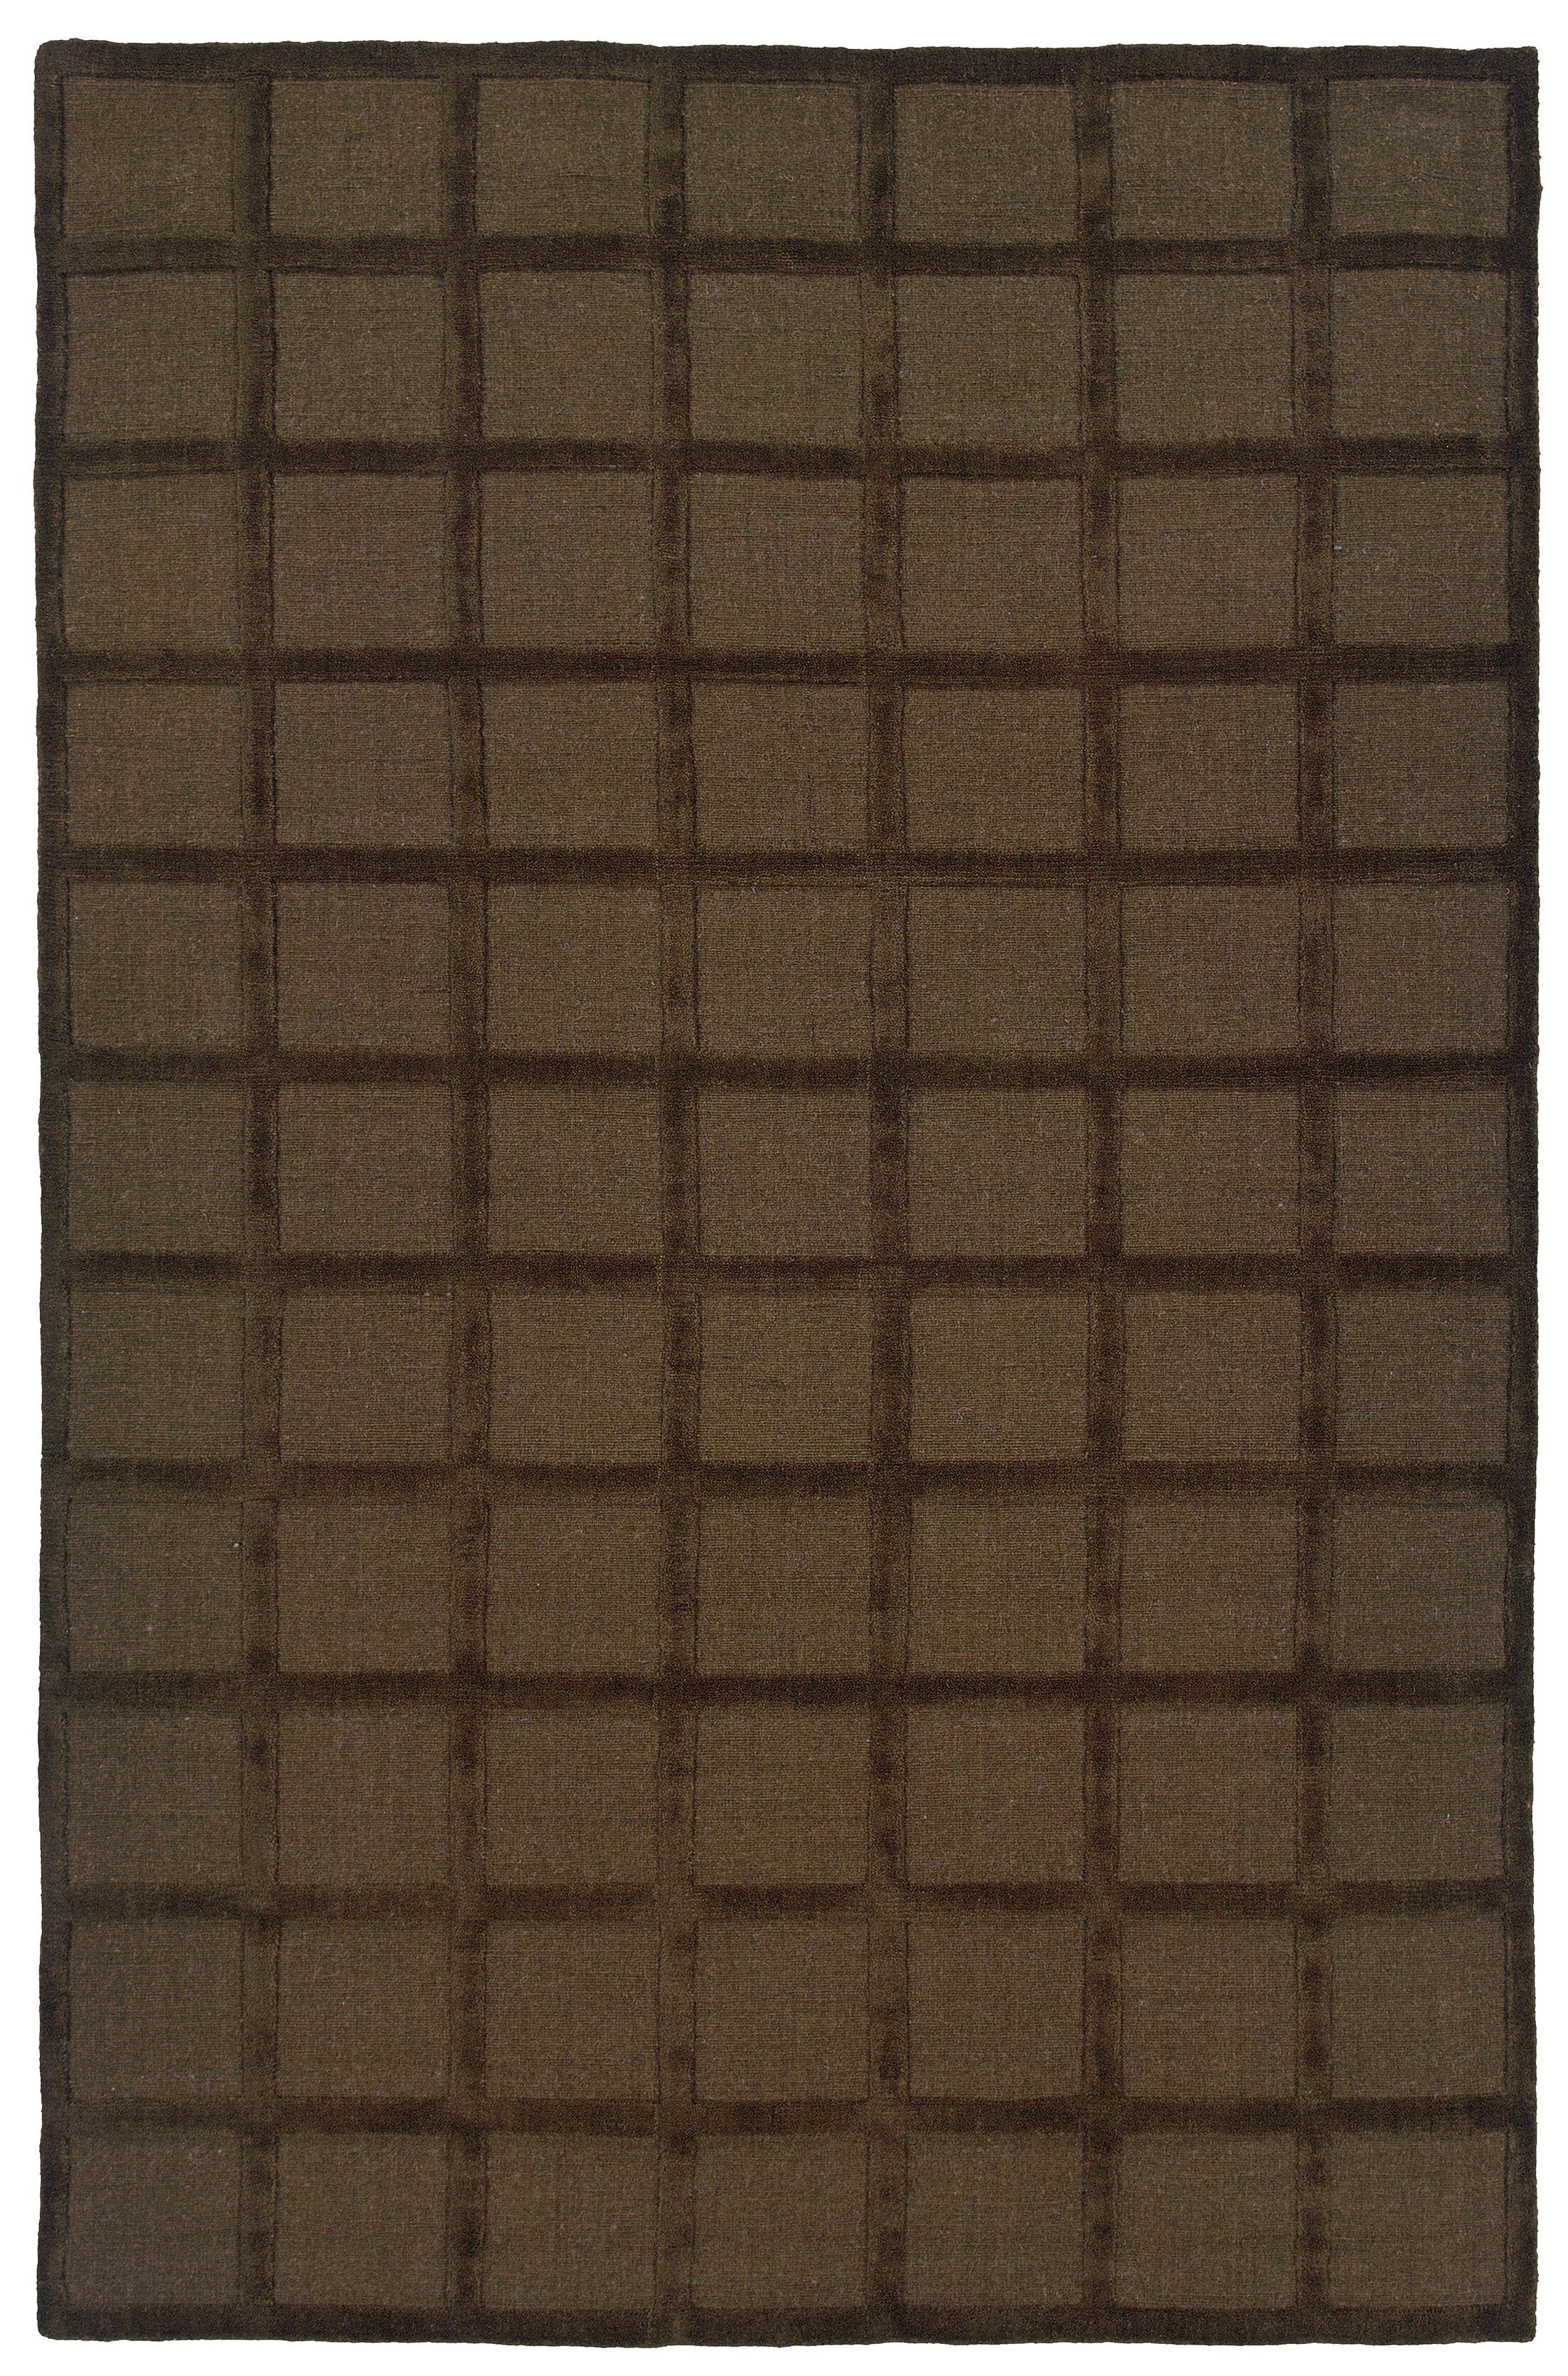 Brown Area Rug Rug Size: Rectangle 5' x 8'